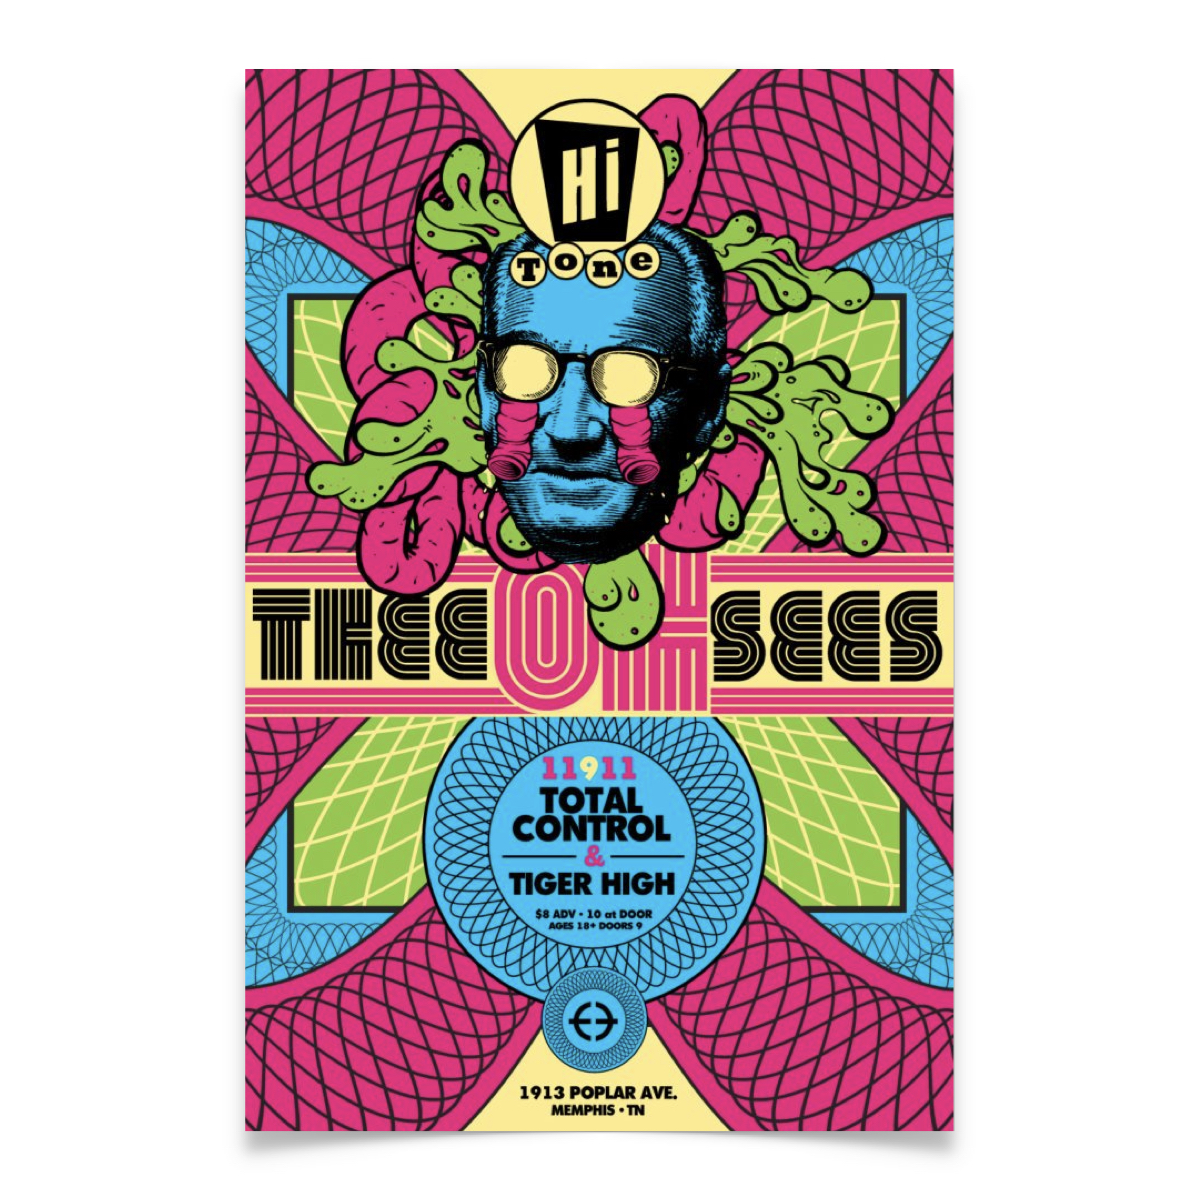 SFER-Posters-OhSees.jpeg